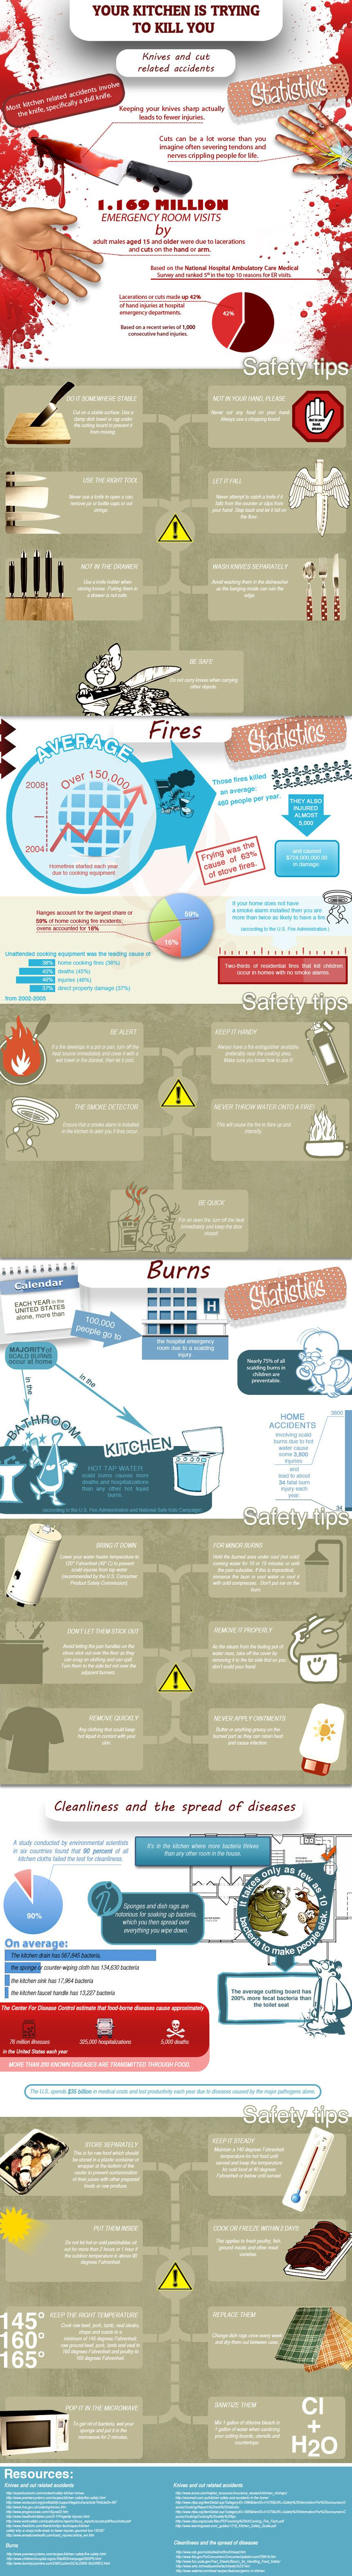 Clean beauty kitchen safety kitchen safety tips food